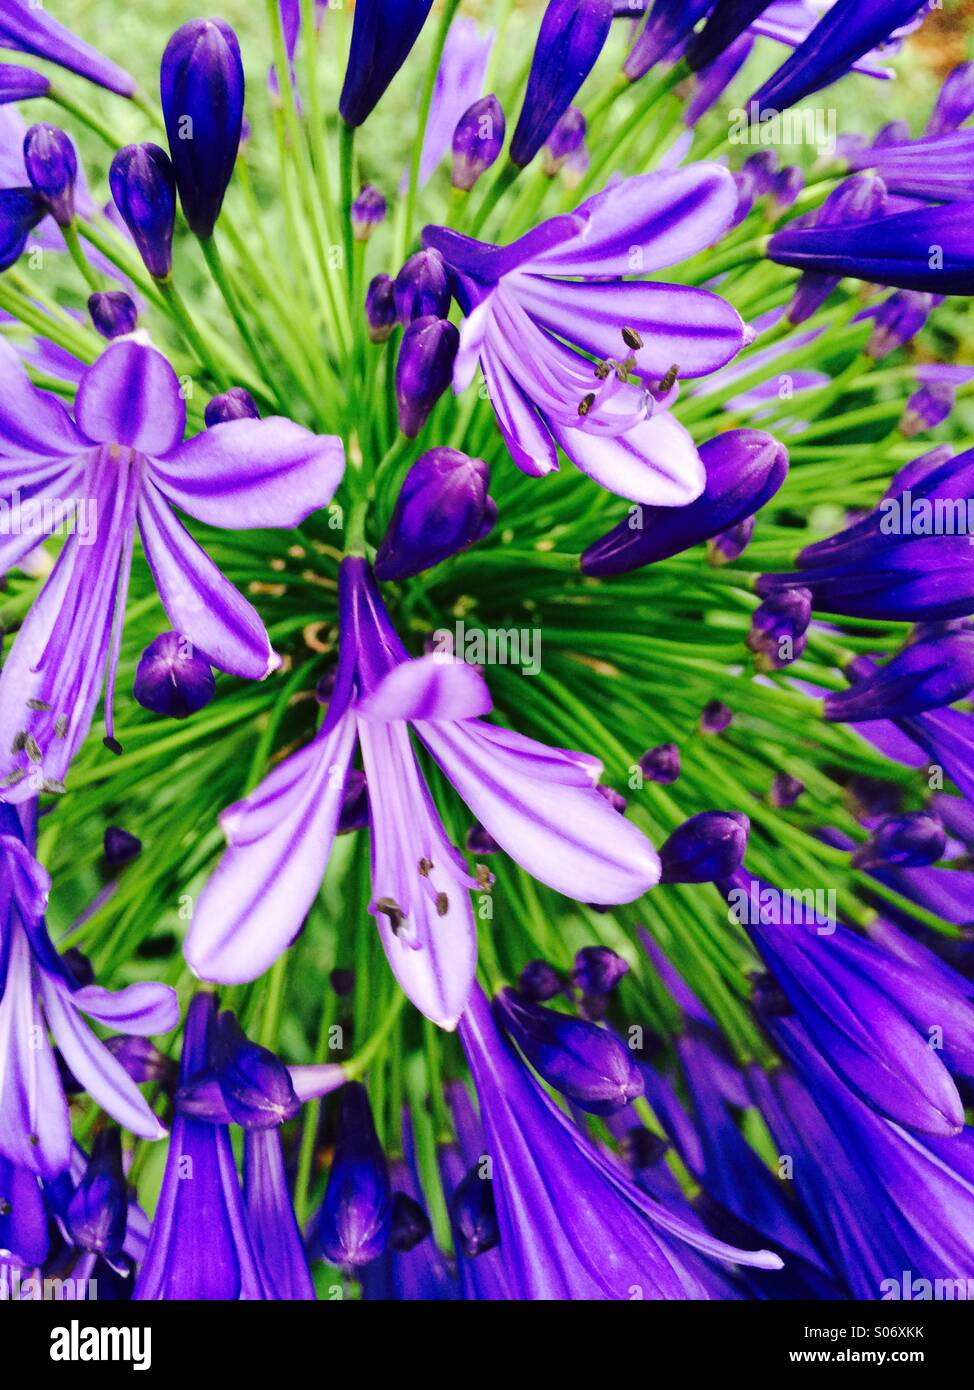 Close-up of Flowers on stems from globe flower Agapanthus - Stock Image